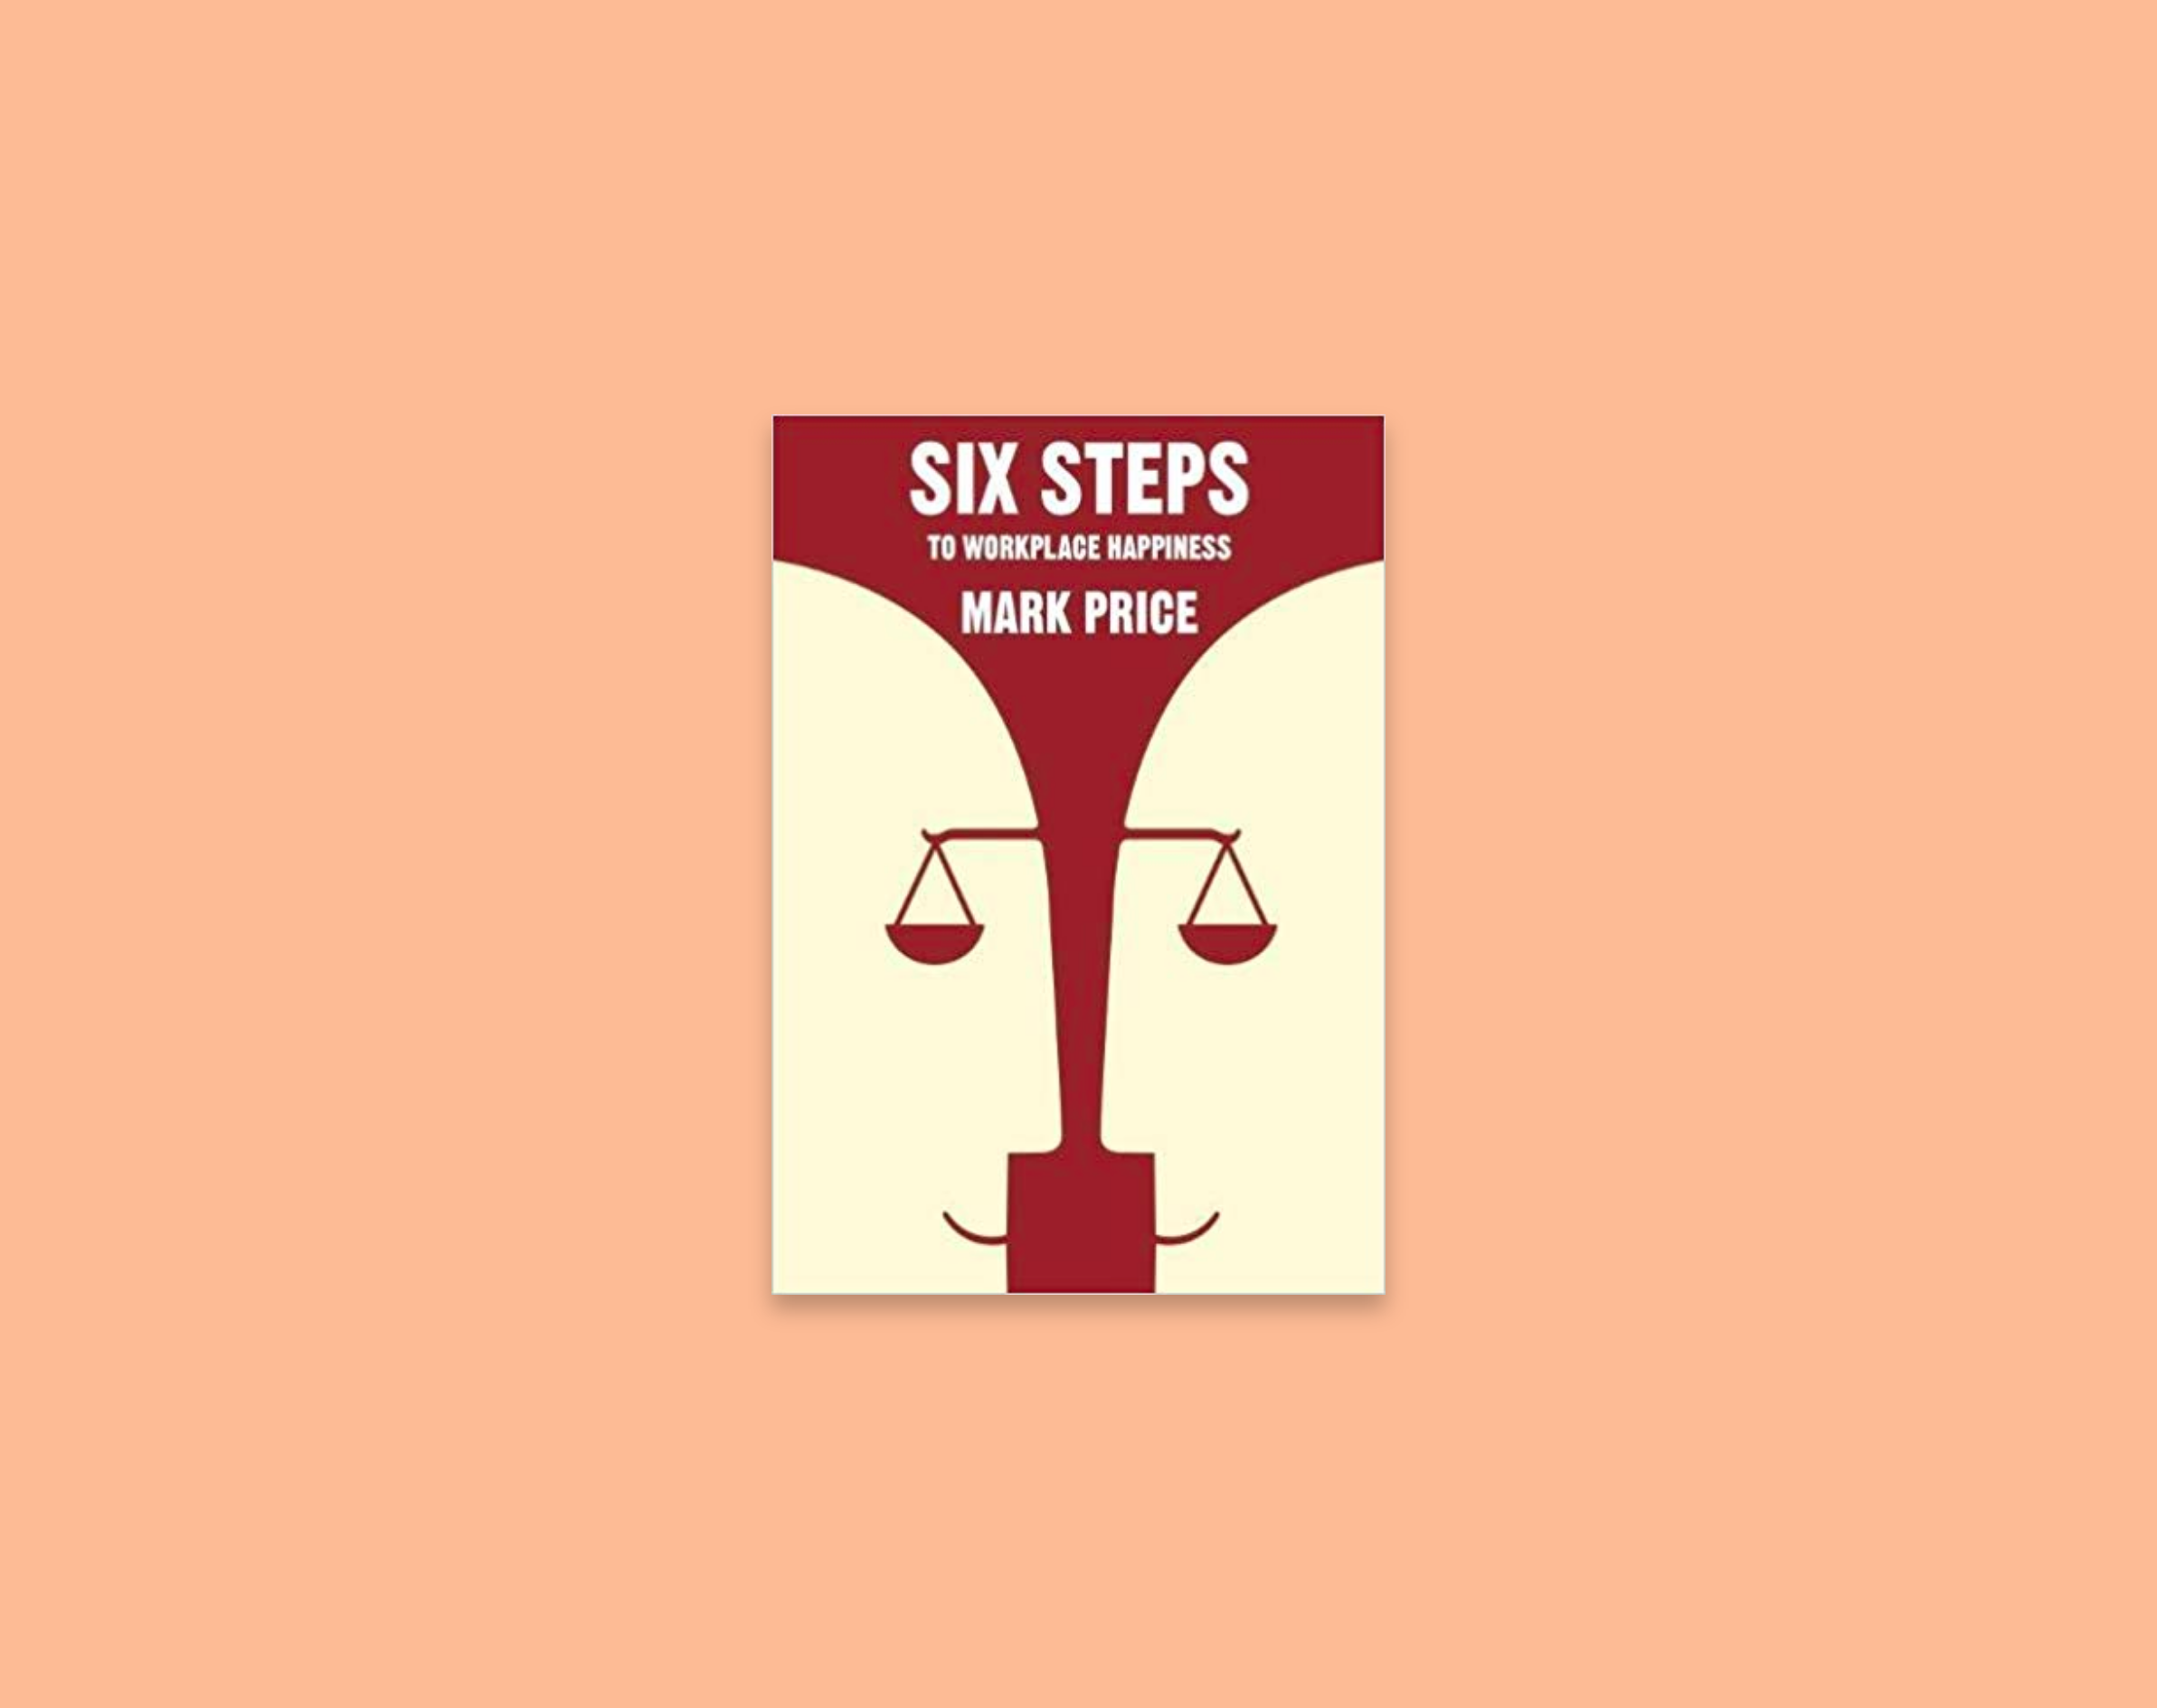 Six Steps to Workplace Happiness by Mark Price